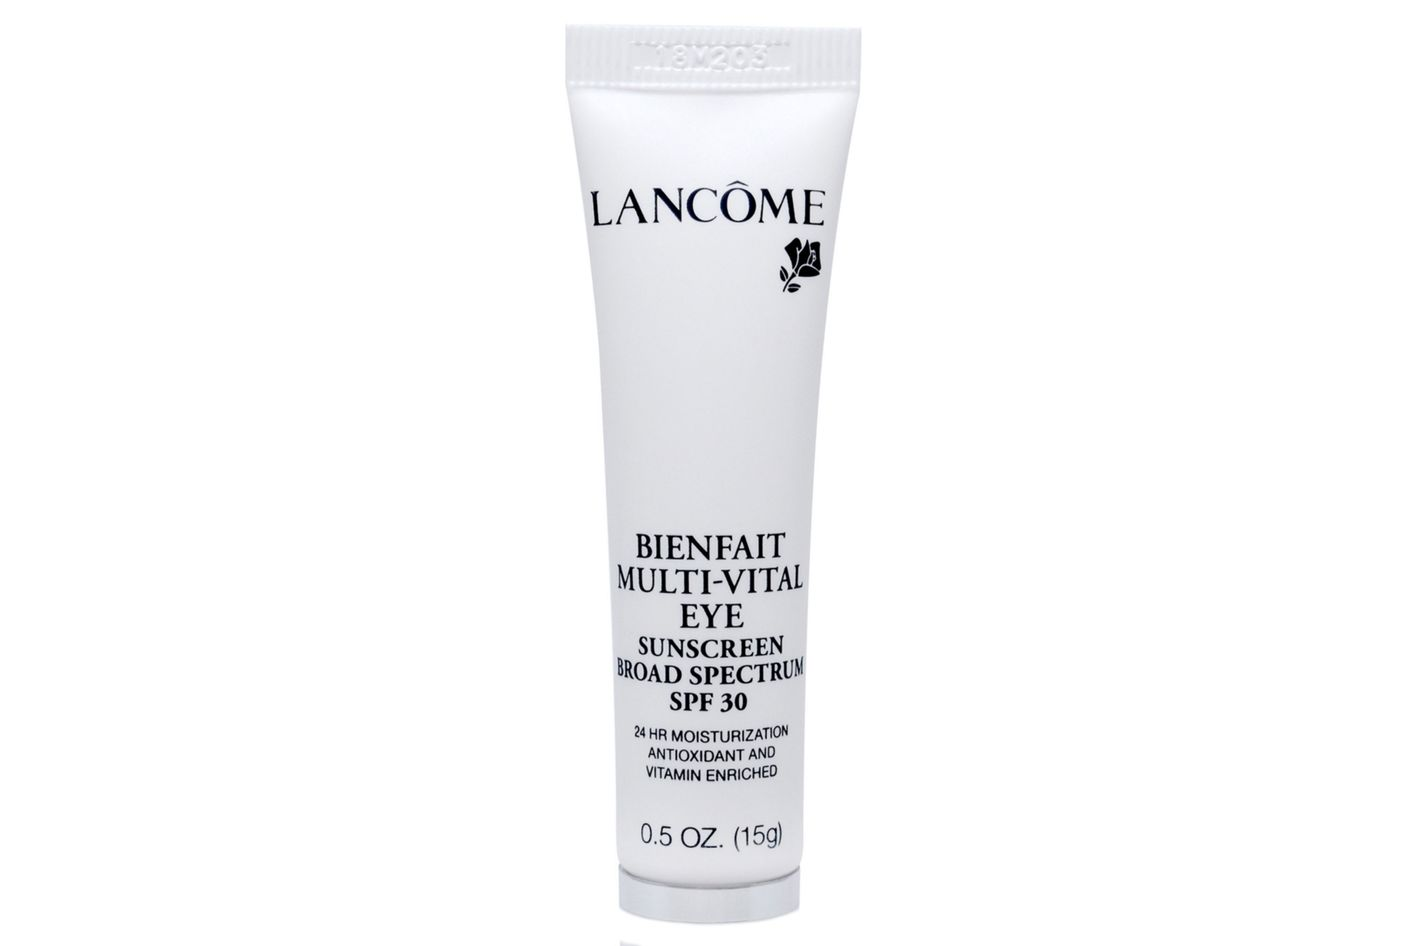 Lancome Bienfait Multi-Vital Eye Sunscreen Broad Spectrum SPF 30